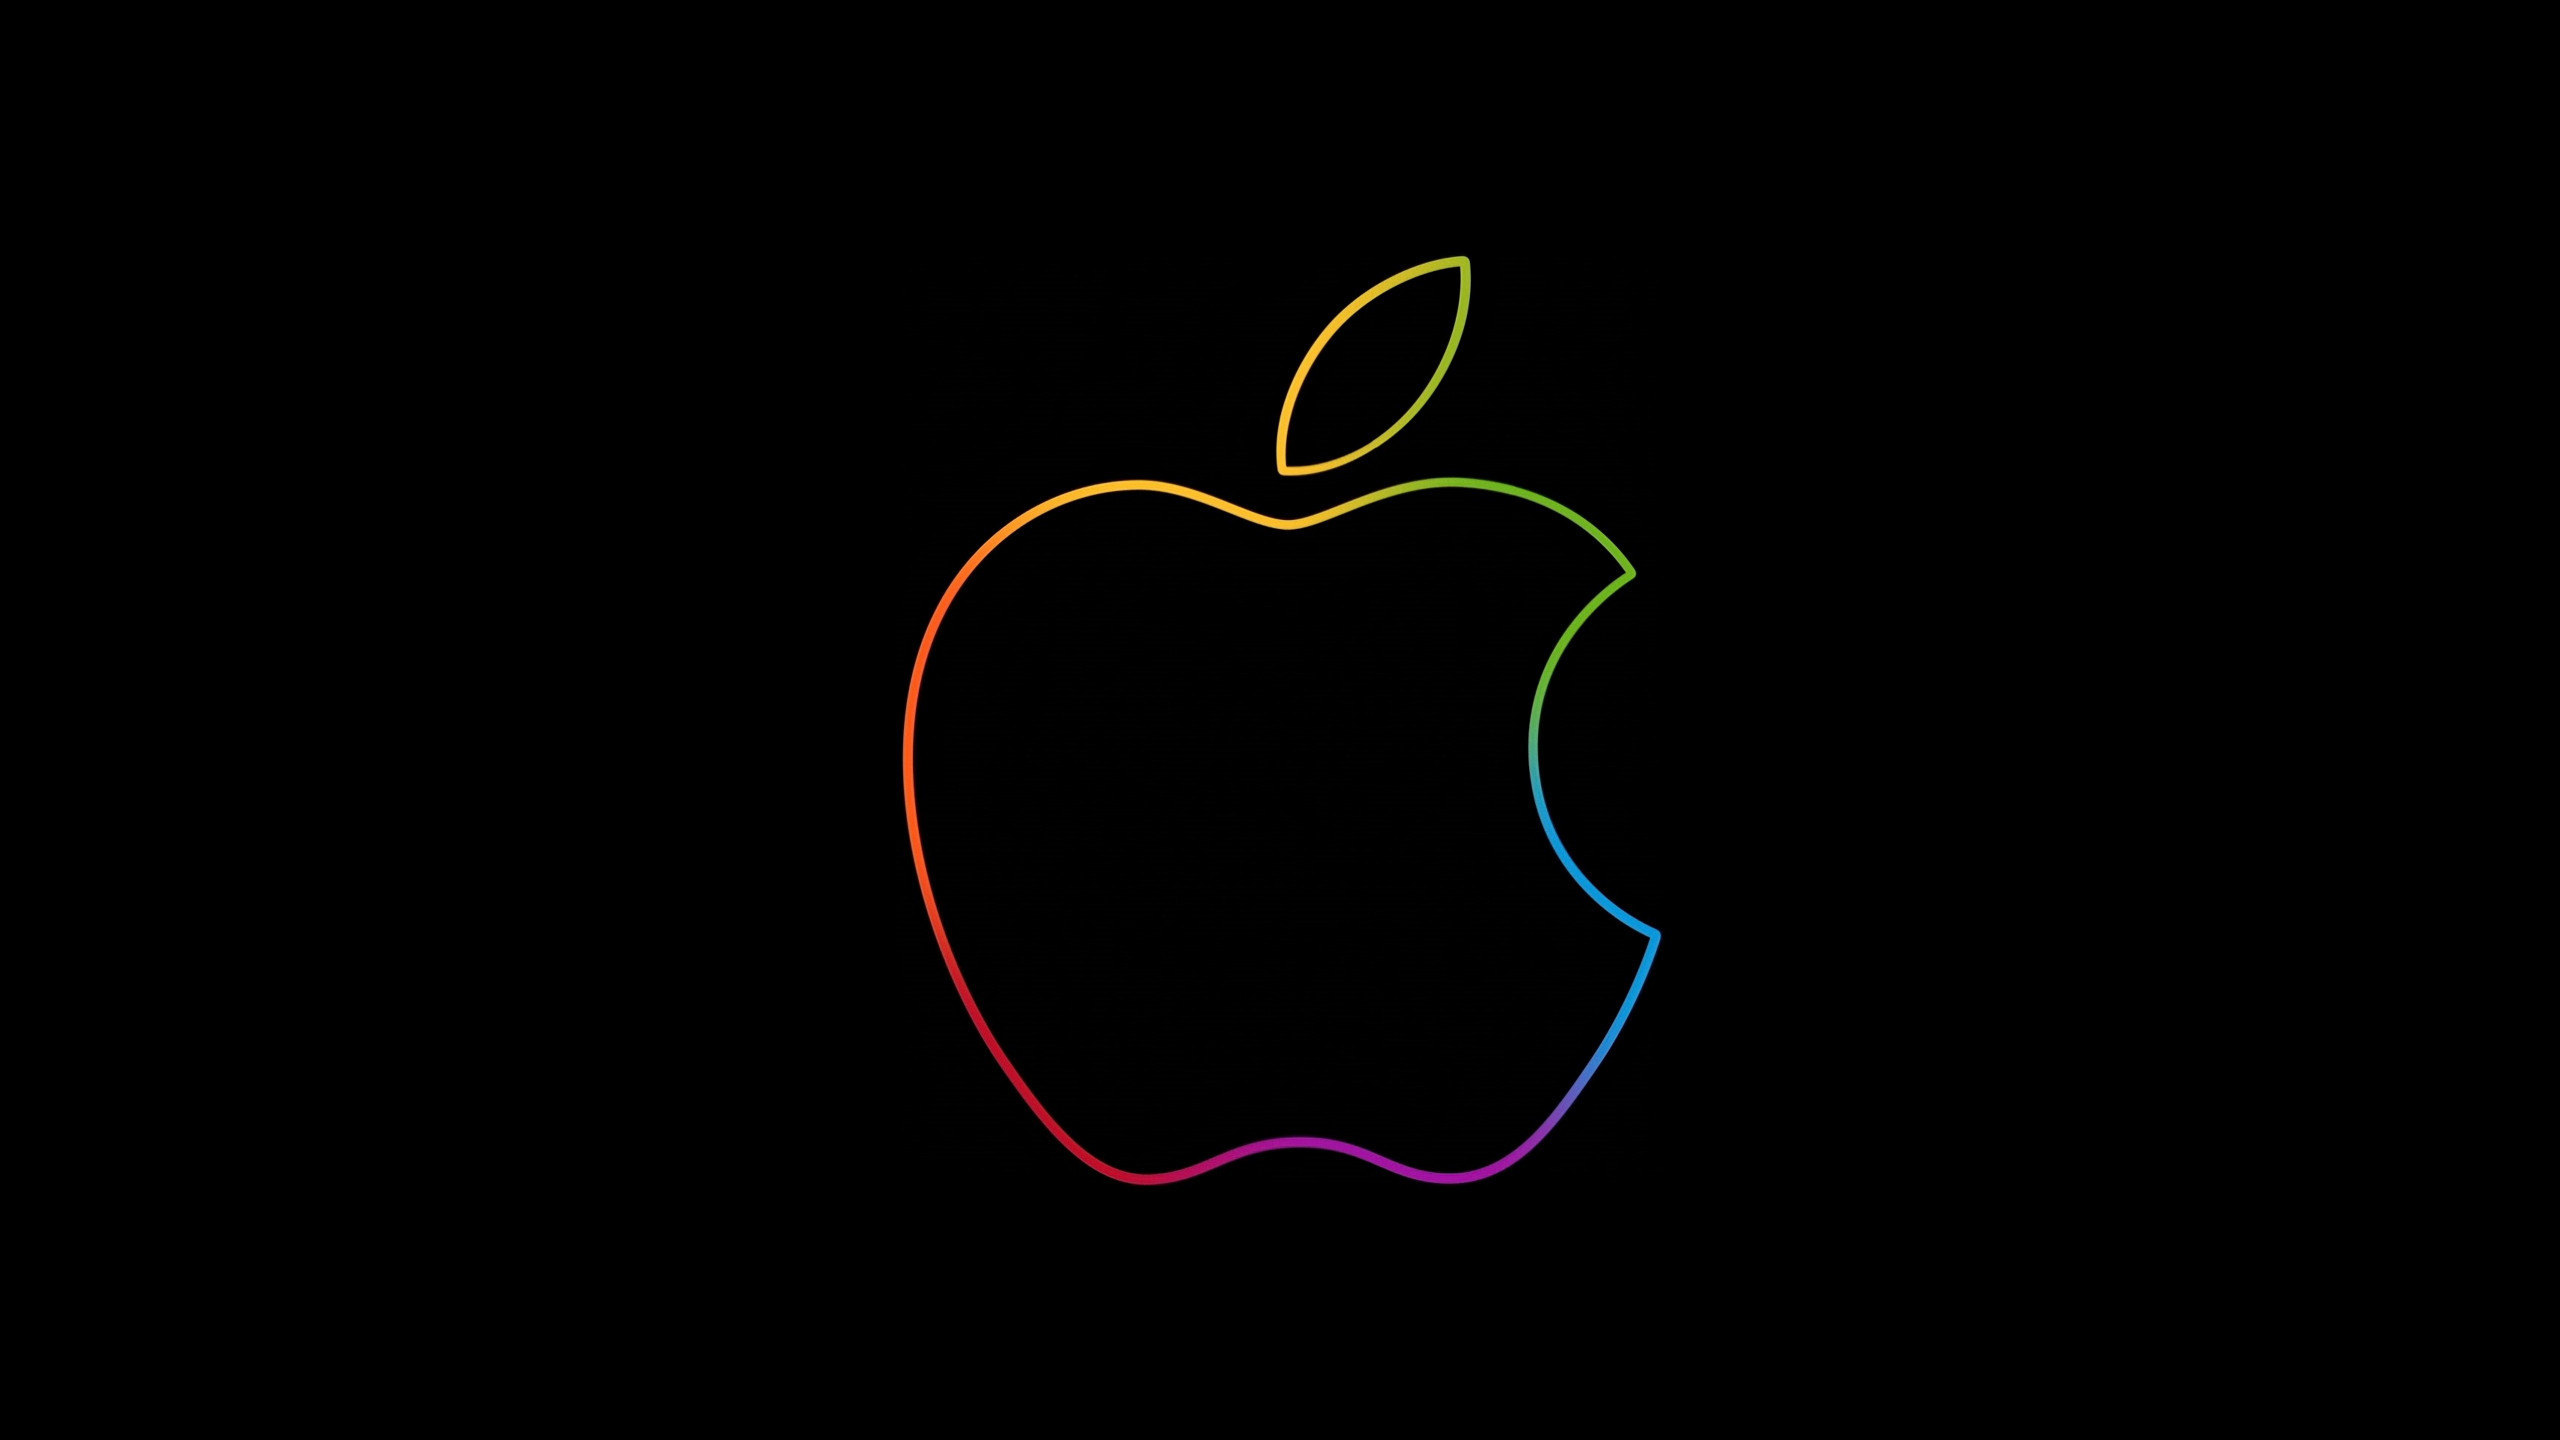 The famous Apple logo wallpaper 2560x1440